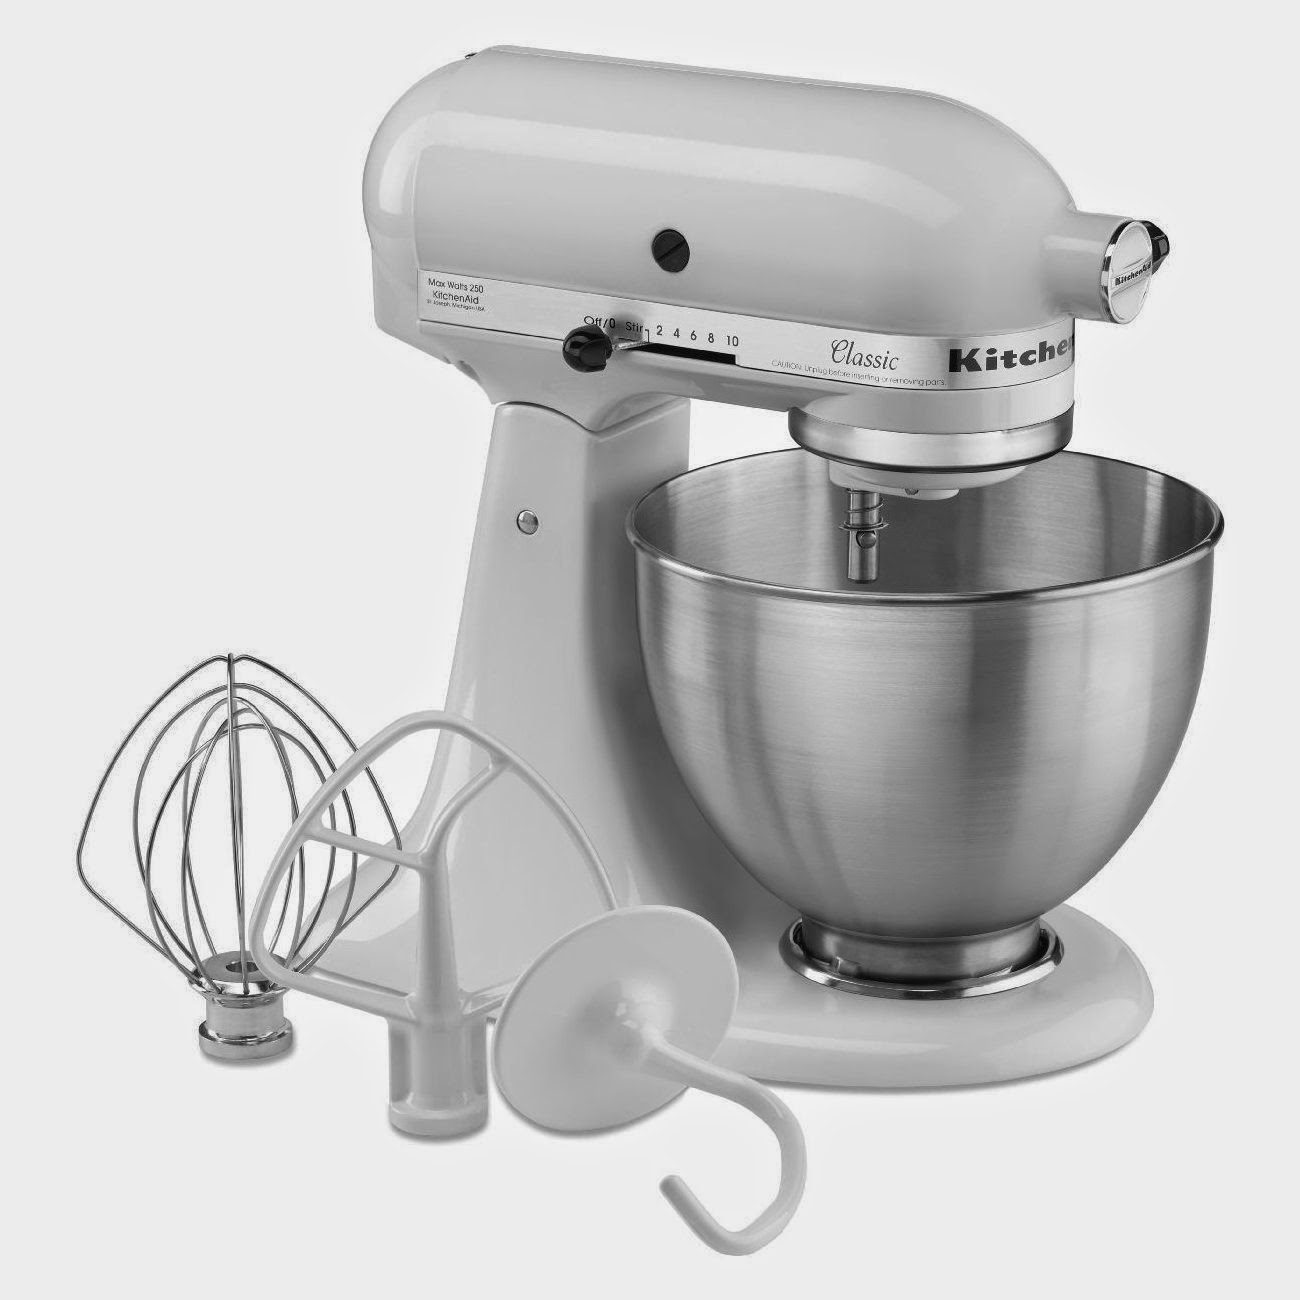 Kitchen Aid Mixer Reviews Outdoors Home Garden And More Kitchenaid K45sswh K45ss Classic 4